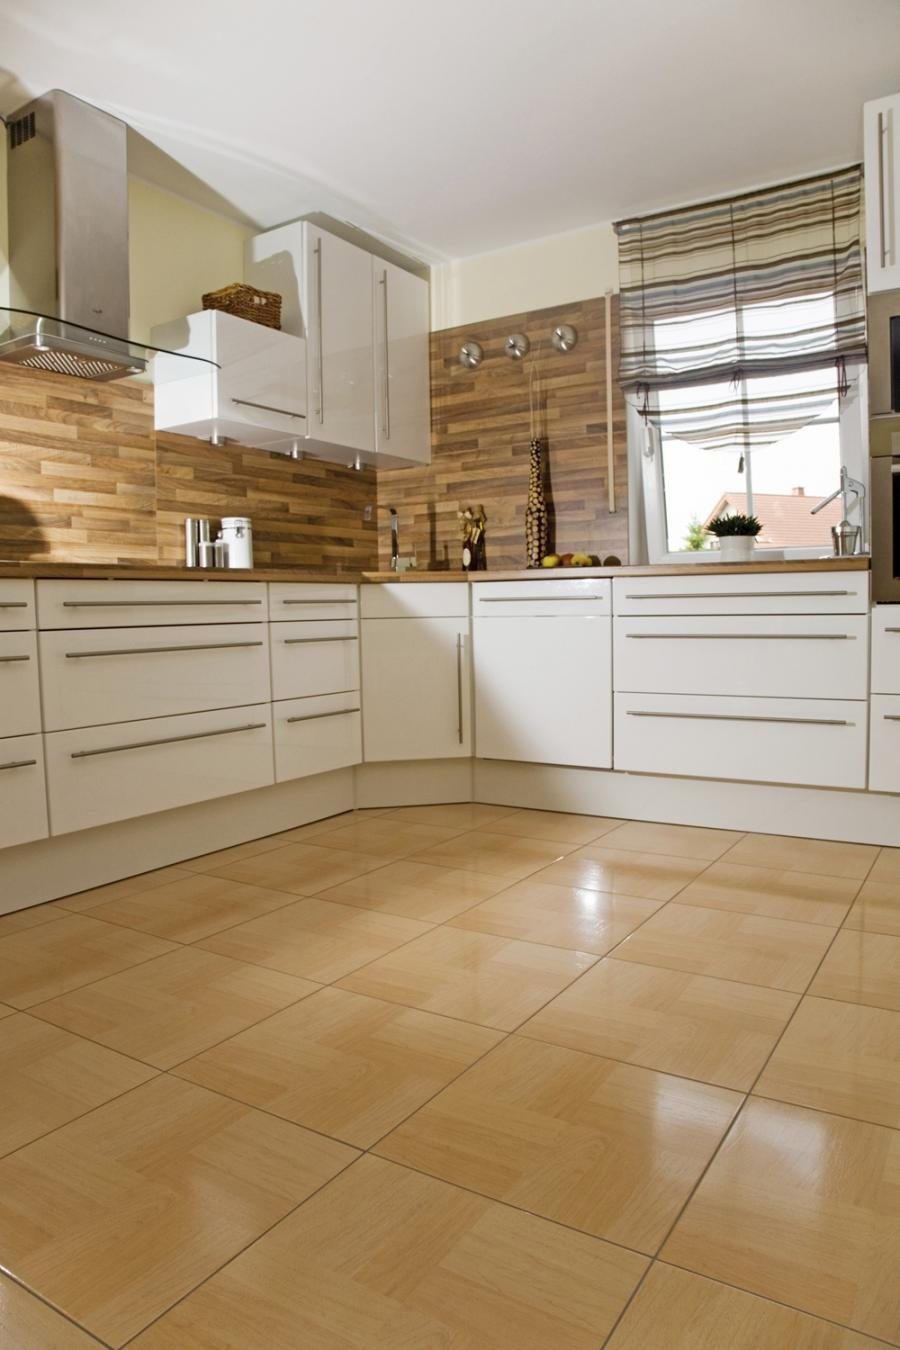 Kitchen ceramic tile floor photos for Ceramic tile kitchen floor ideas